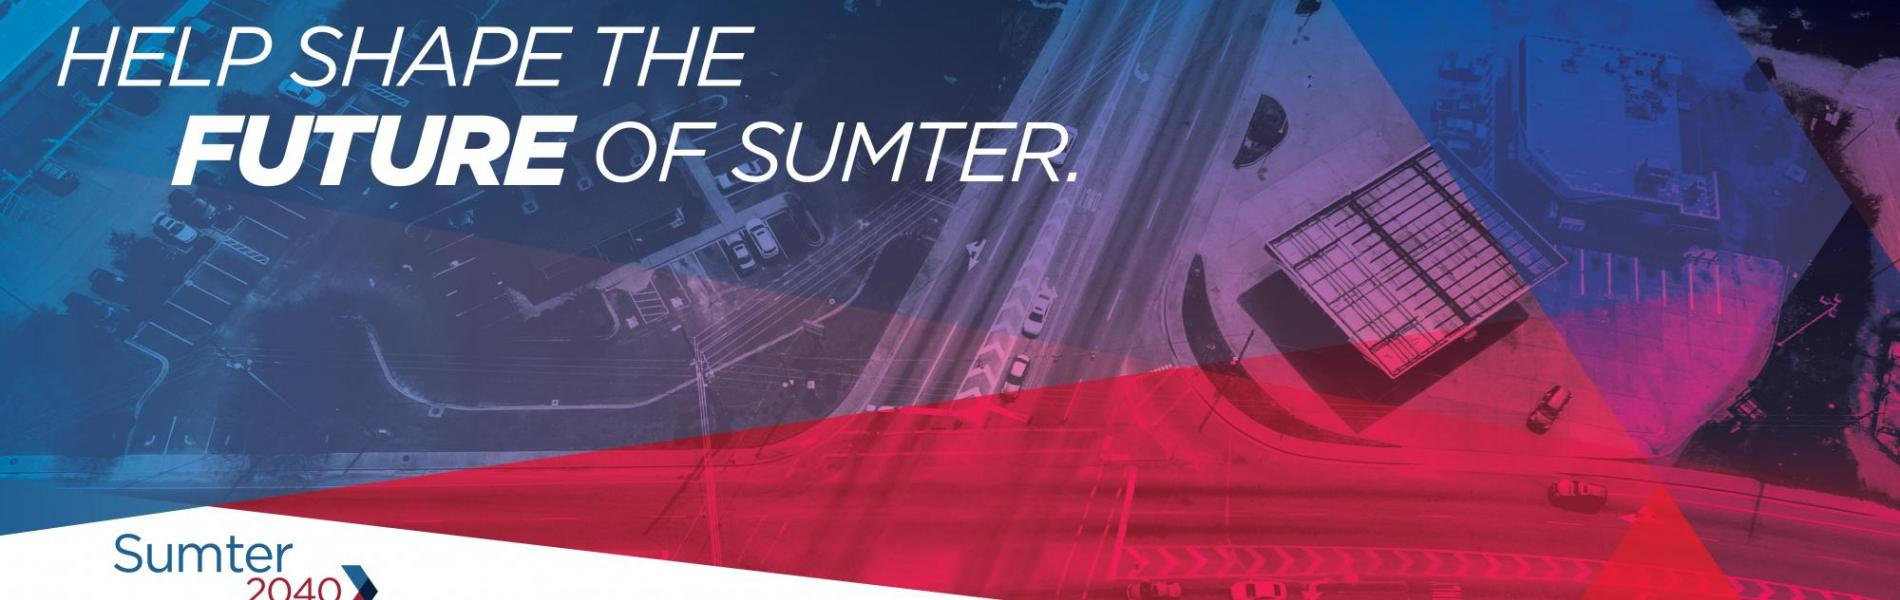 Help Shape the Future of Sumter - Sumter 2040